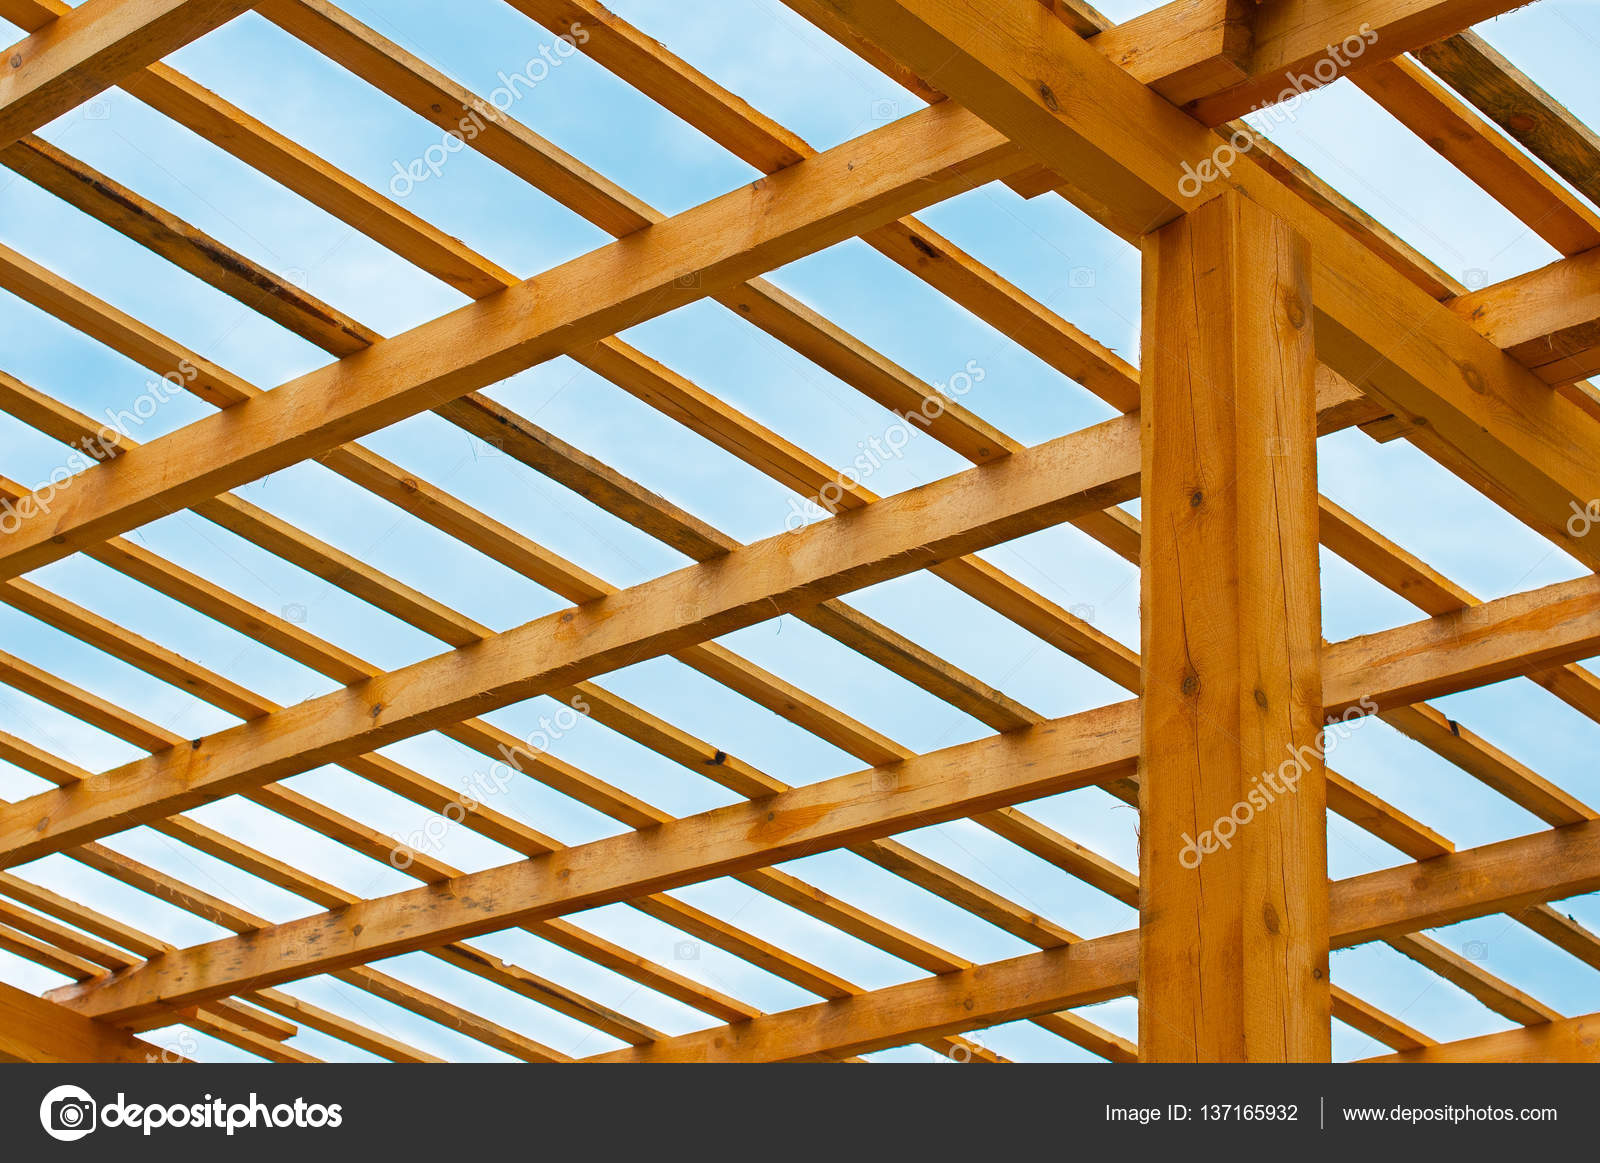 Roofing Construction Wooden Roof Frame House Construction Stock